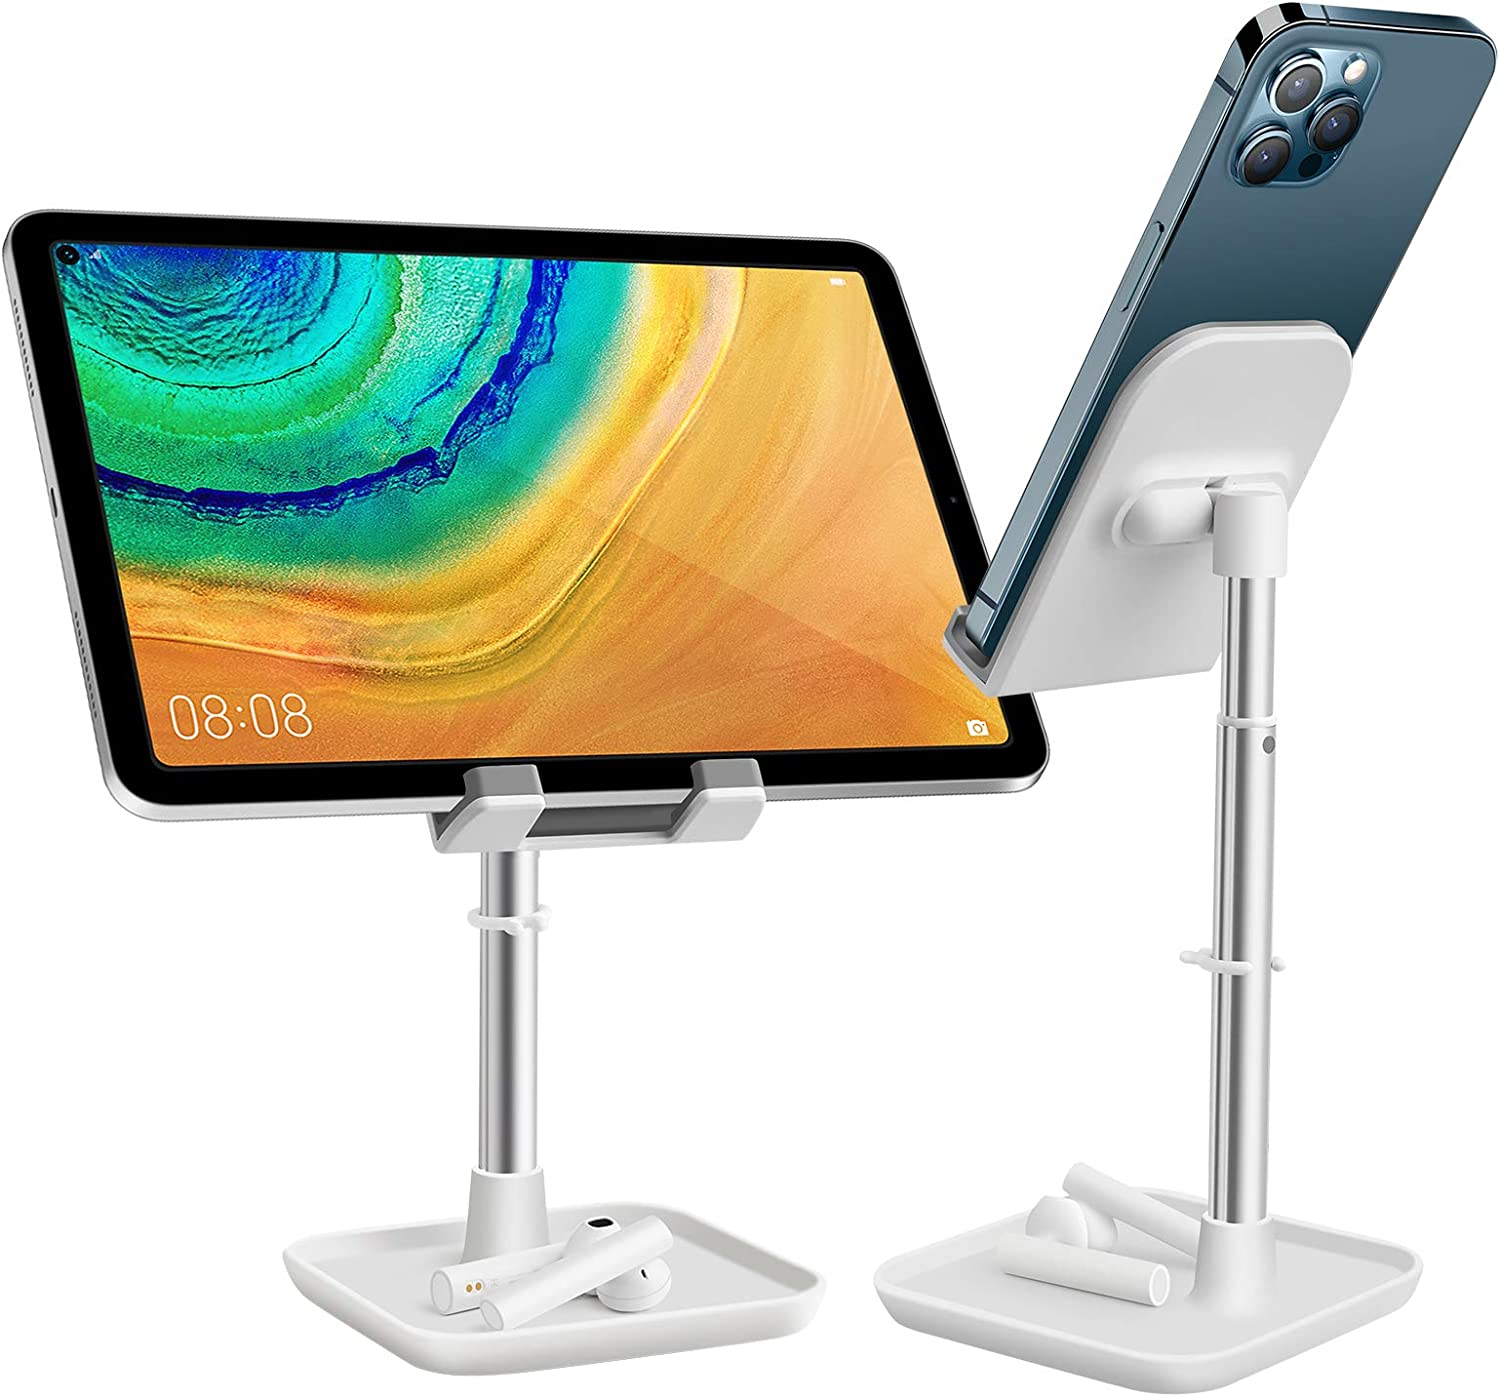 Height Adjustable Cell Phone Stand, Aoviho Desktop Phone Holder Cradle Compatible with iPhone Pro 11 X XR XS MAX 8 7 6 Plus Samsung iPad Mini Nintendo Switch Tablets (4-10